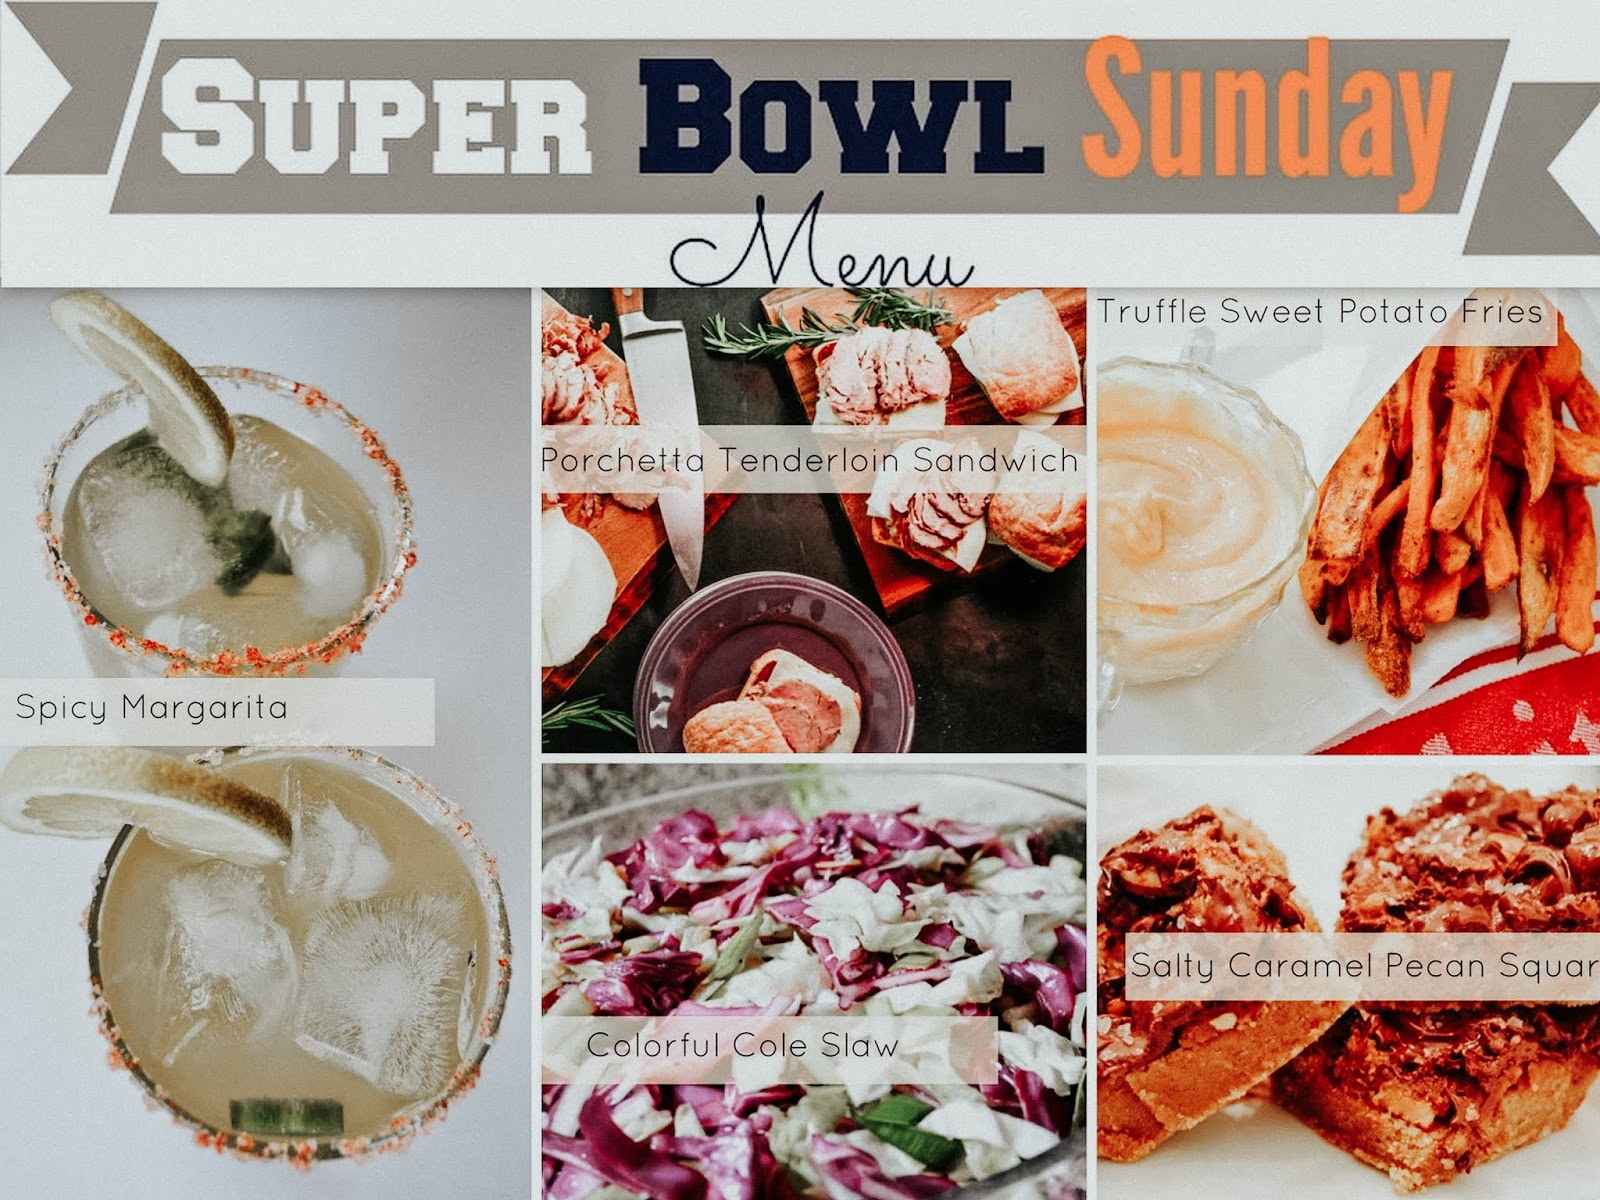 superbowl-biggame-game-day-sunday-snacks-food-menu-